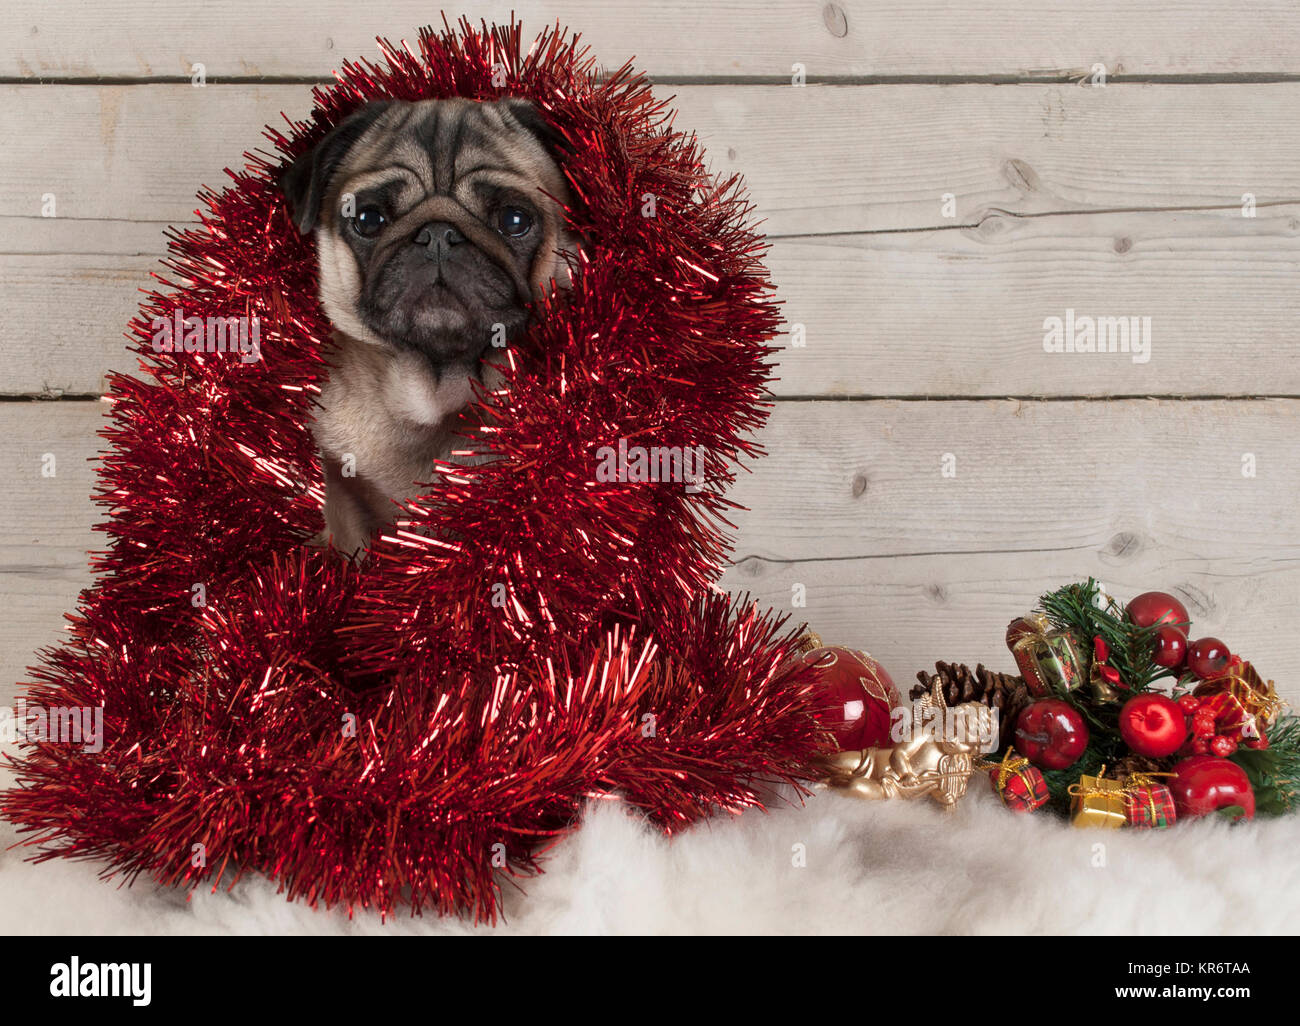 cute Christmas pug puppy dog decorated with tinsel, sitting down on sheepskin with ornaments and wooden backdrop - Stock Image